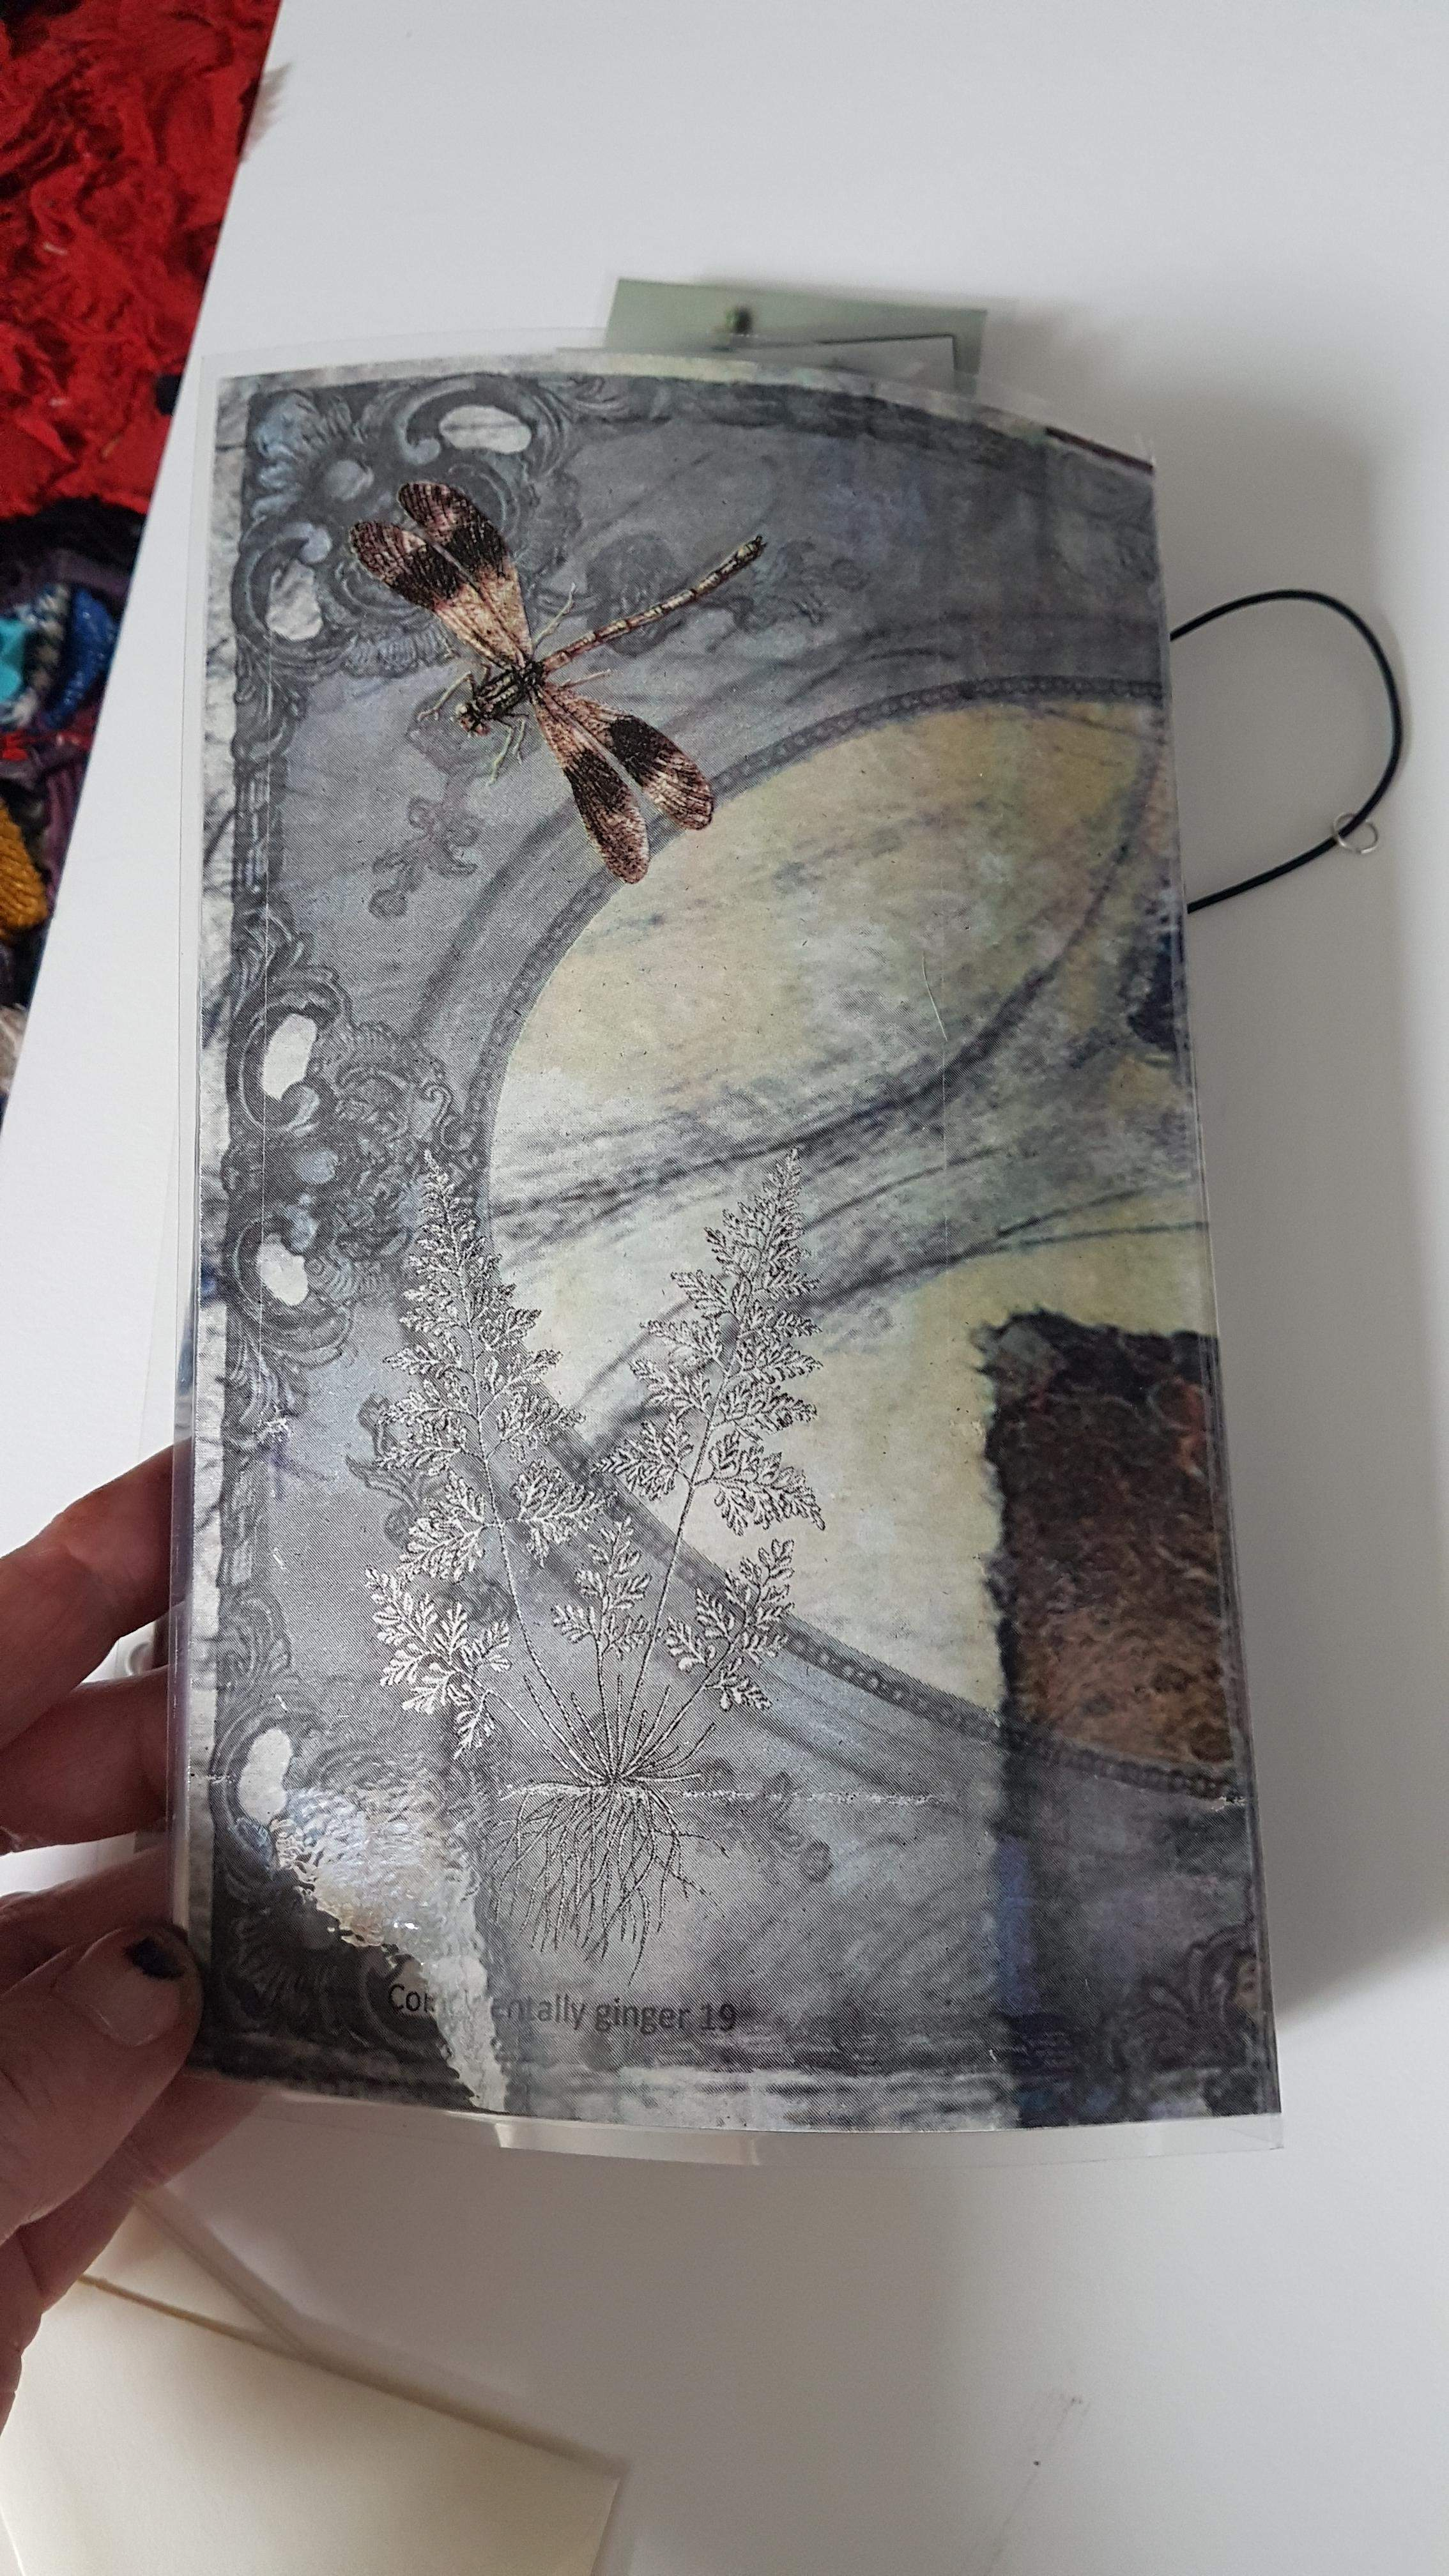 Laminated travellers notebook - Imagine